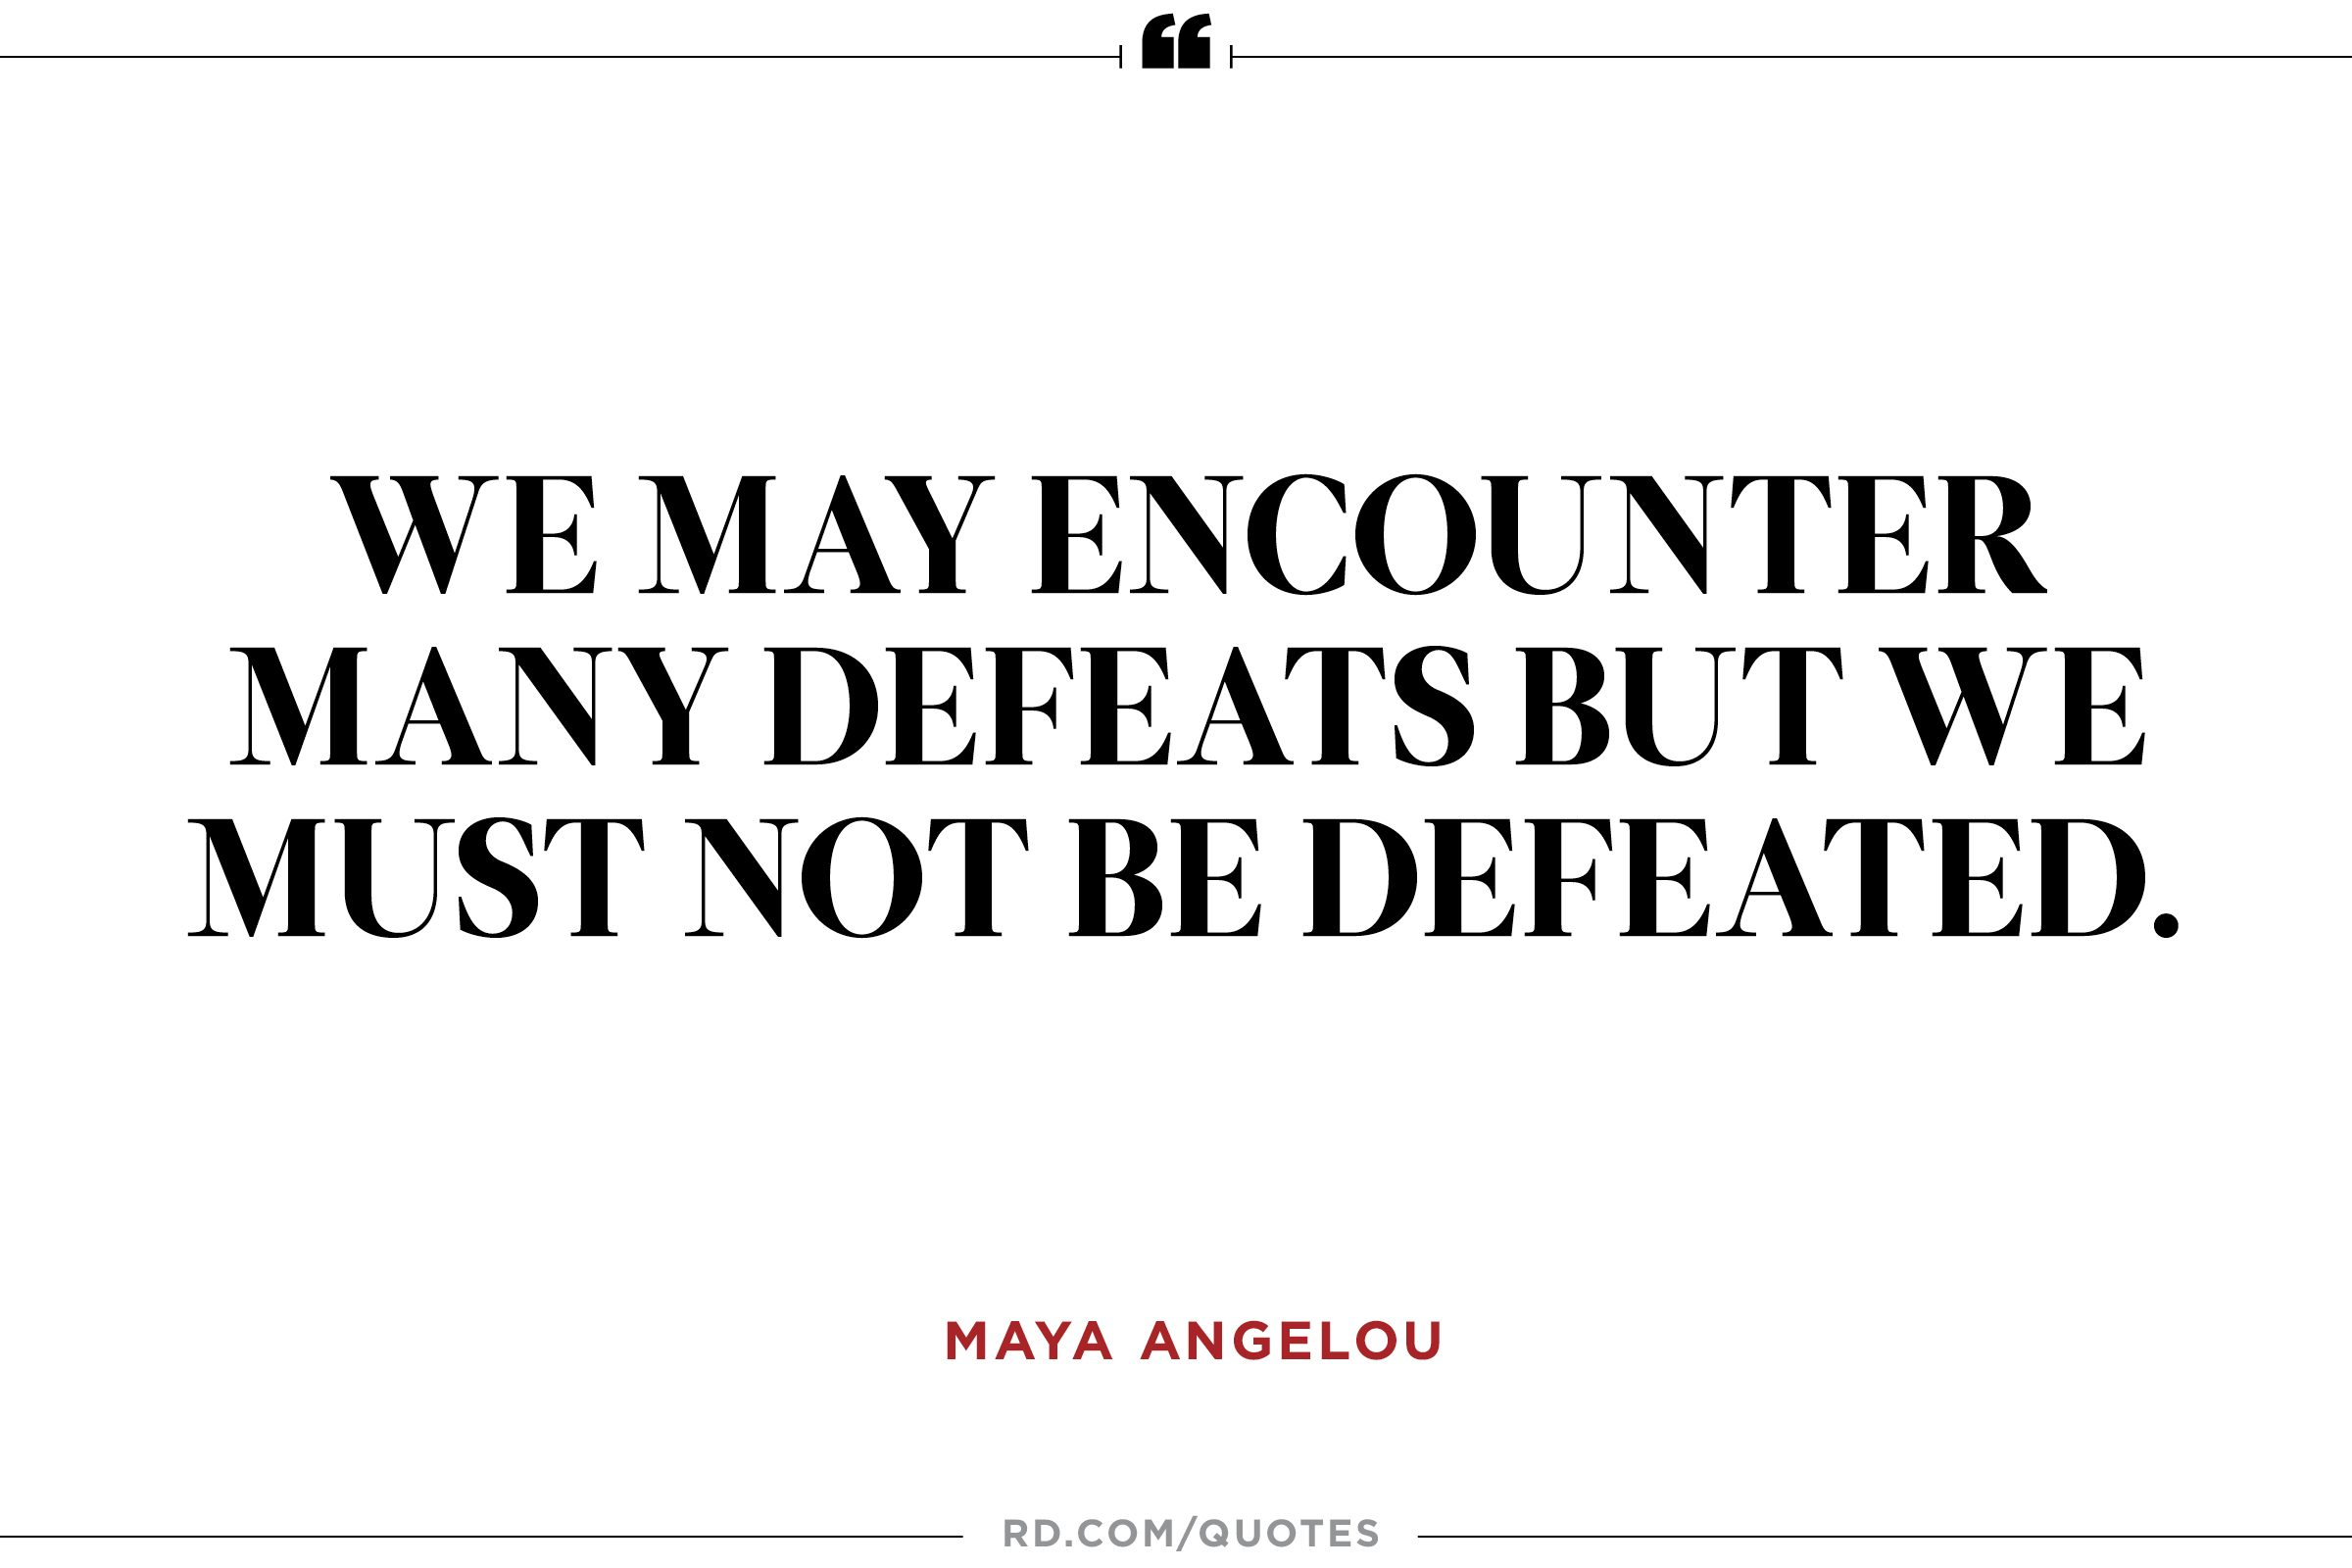 Quotes About Optimism Maya Angelou At Her Best 8 Quotable Quotes  Reader's Digest